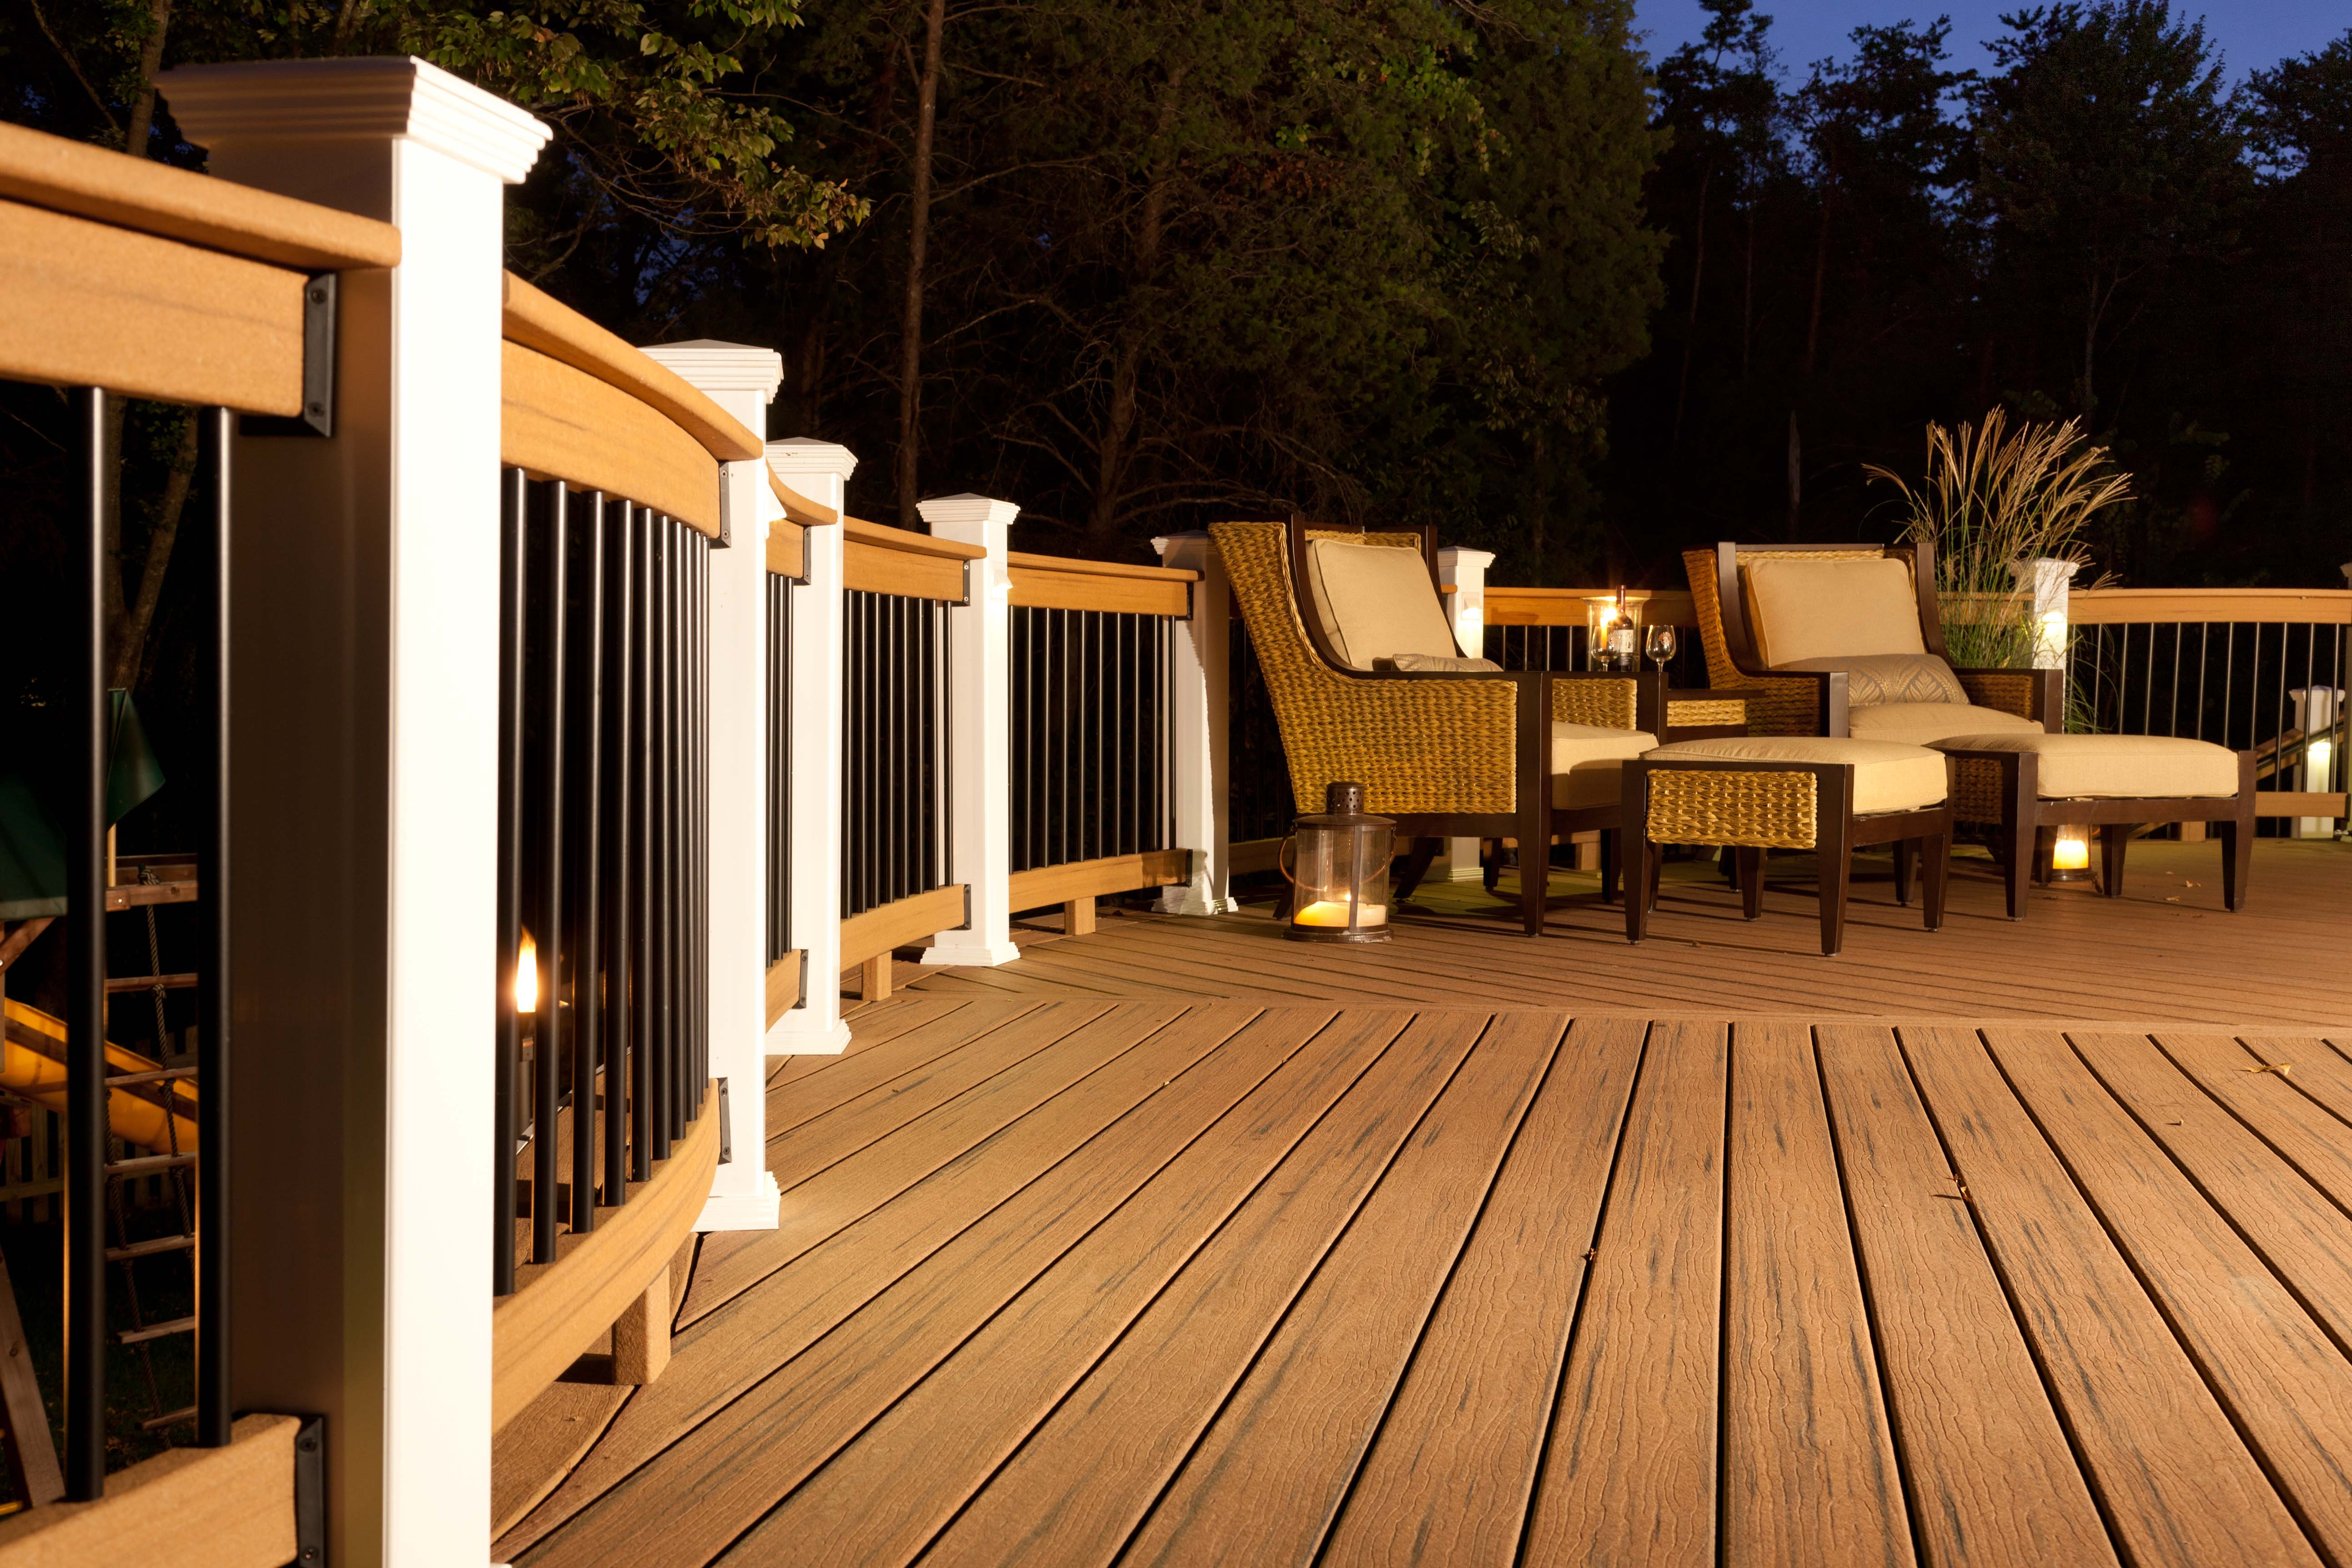 THE EXTENDED LIFECYCLE OF DECKING